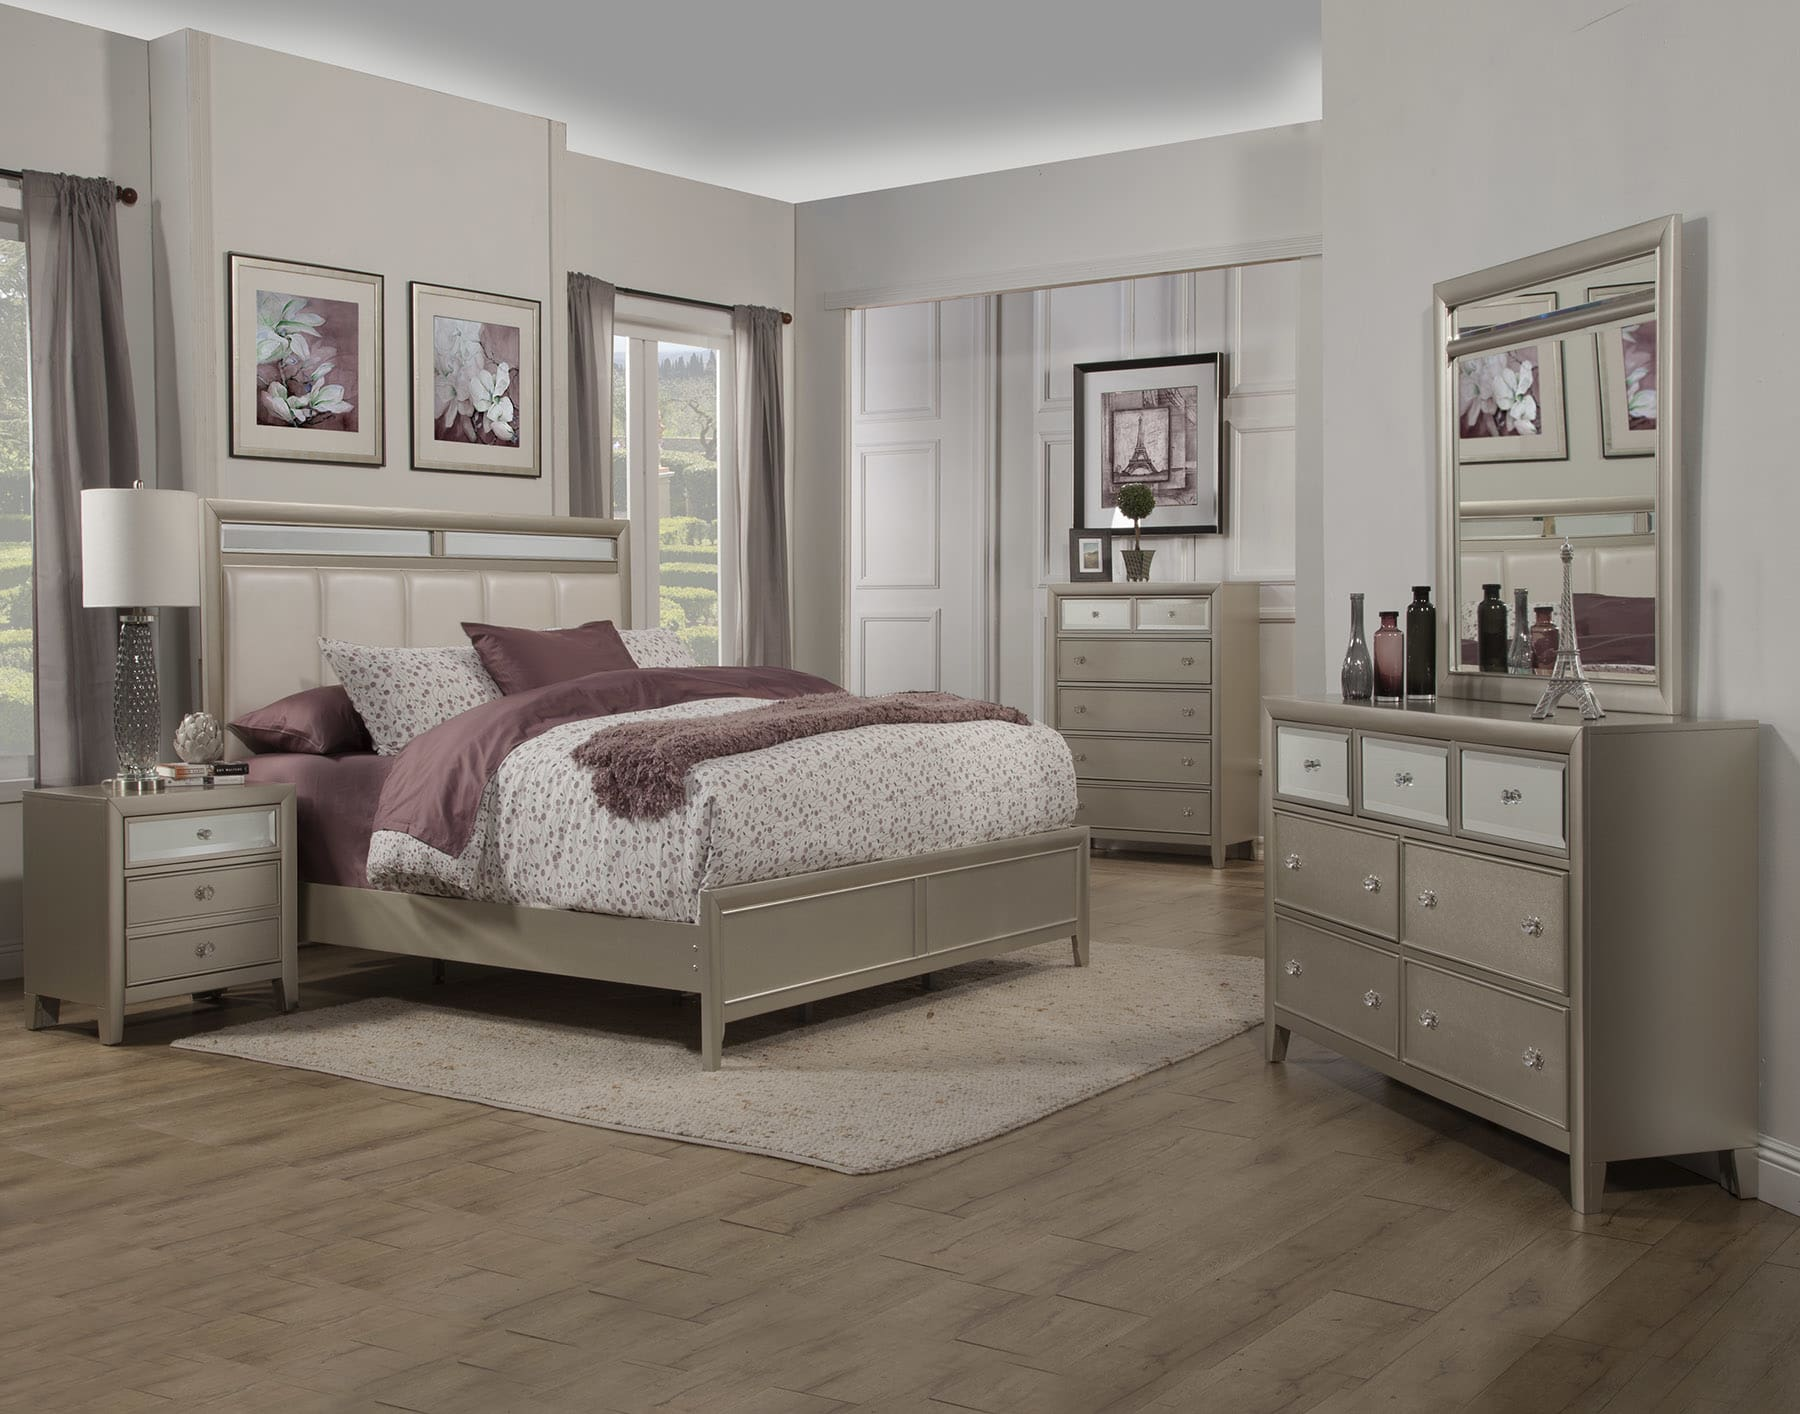 Alpine Silver Dreams King 5-Piece Bedroom Set & Reviews - Goedekers.com